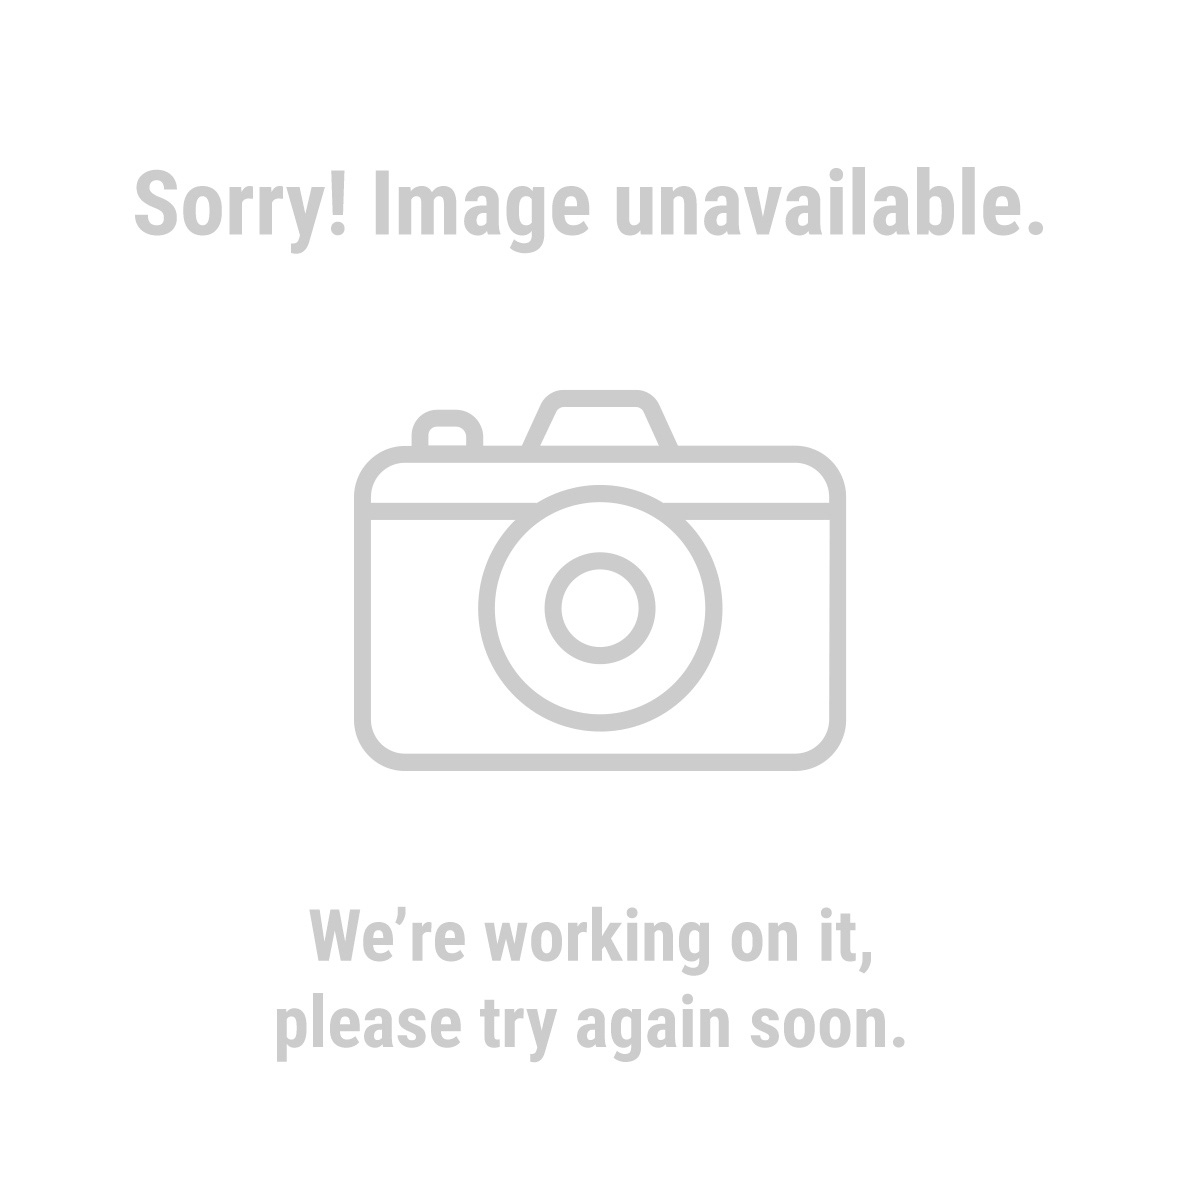 Bunker Hill Security® 47546 Weatherproof Security Camera with Night Vision